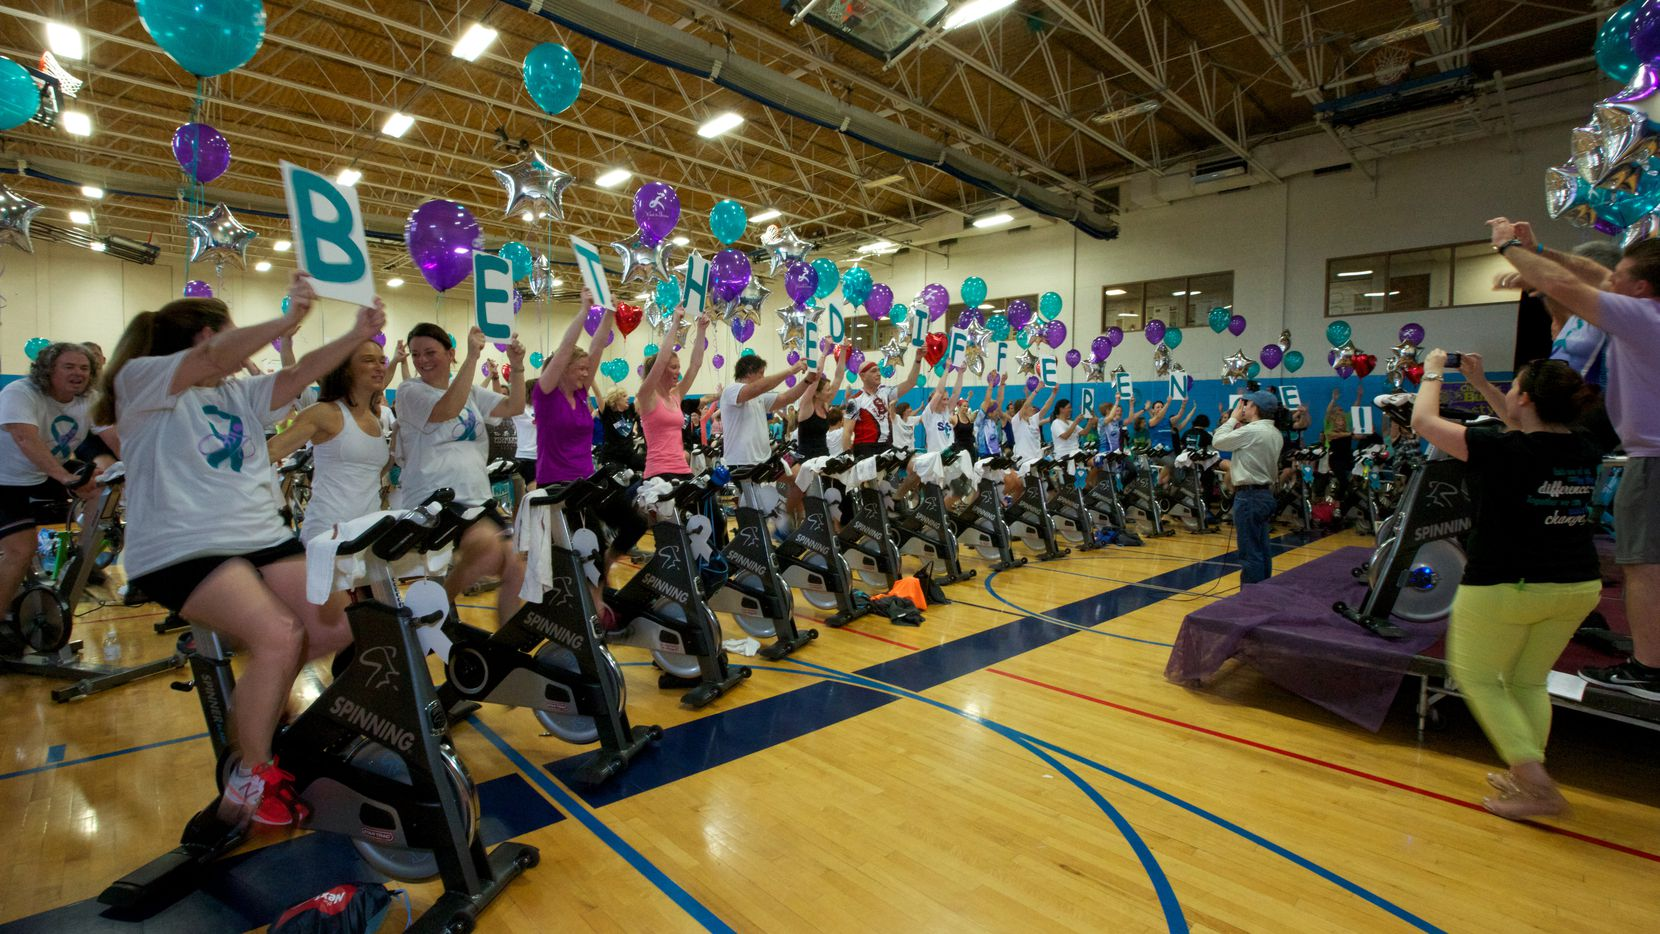 Five years ago, Wheel to Survive, a fundraiser to help fight ovarian cancer, started at Dallas' Jewish Community Center. It has since spread to cities across the U.S. and has raised $1.6 million.